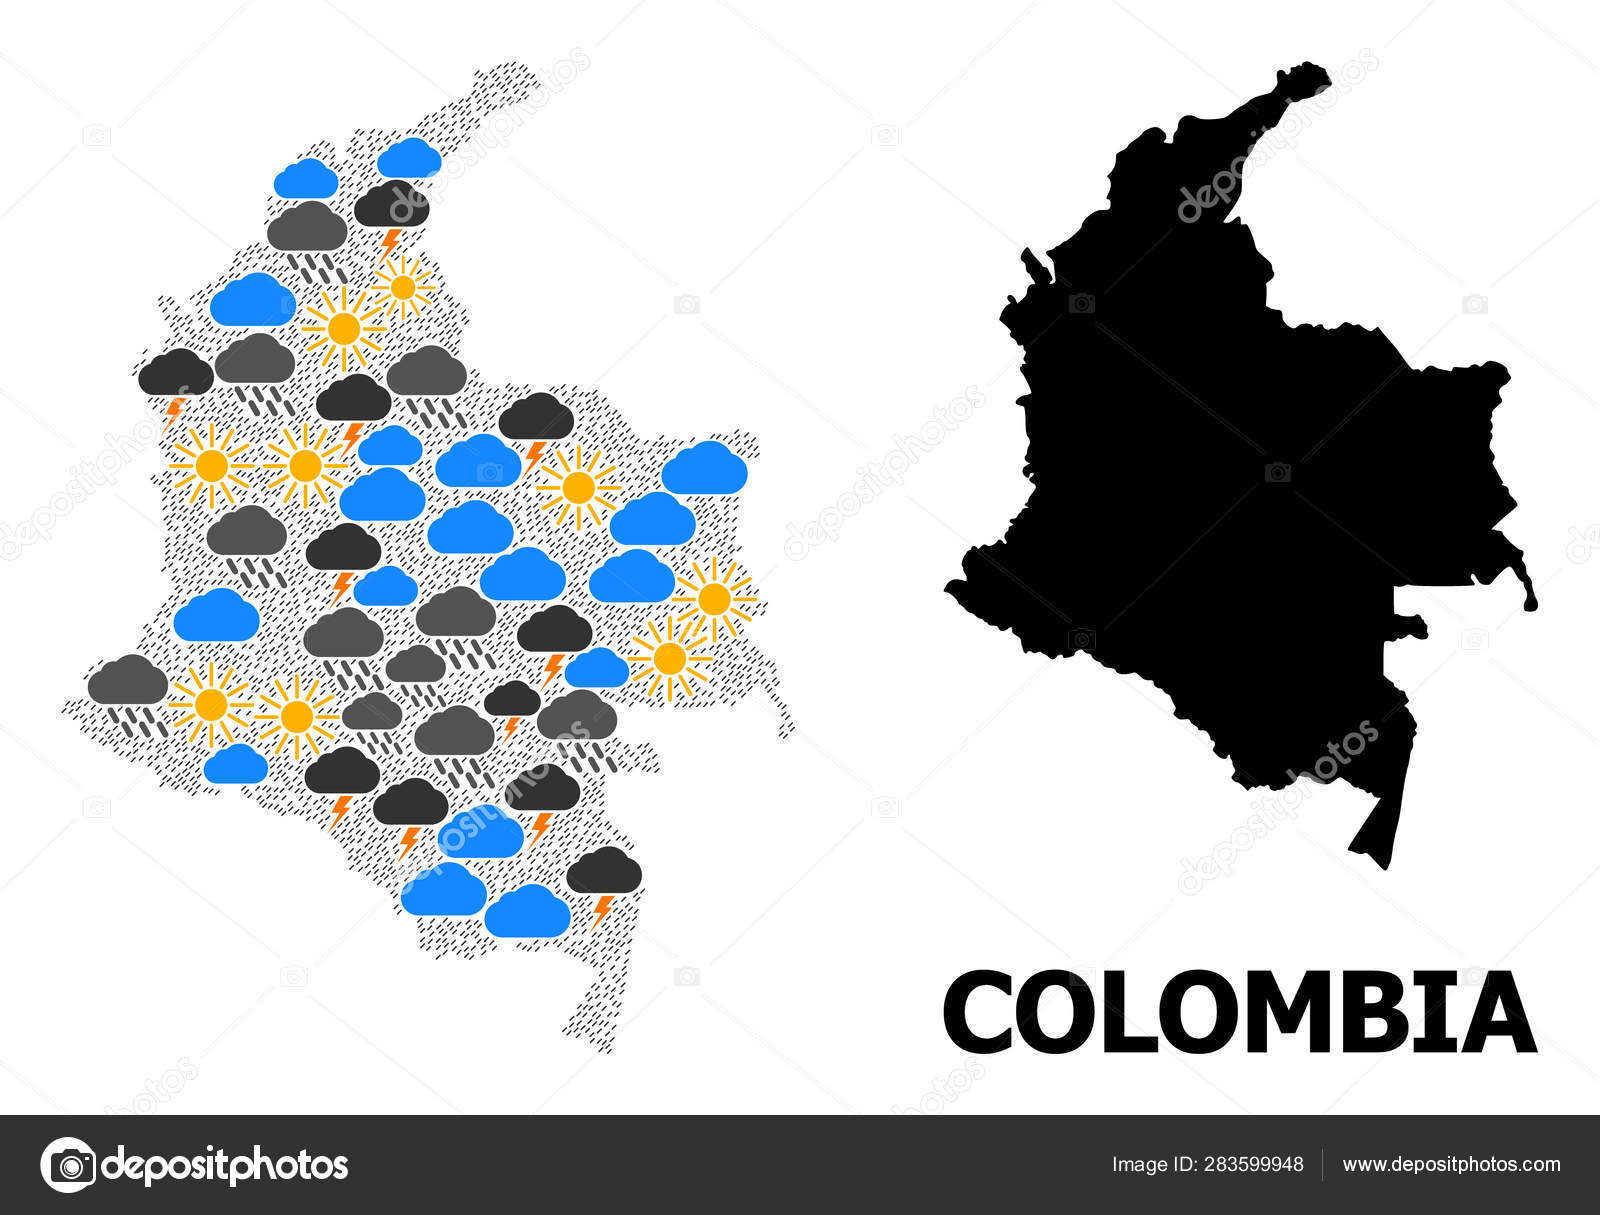 Climate Mosaic Map of Colombia — Stock Vector ... on climate map of americas, climate map of saint lucia, climate map of bahamas, climate map of the world, climate map of trinidad and tobago, climate map of vanuatu, climate map of netherlands, climate map of malaysia, climate map of united arab emirates, climate map of malawi, climate map of burundi, climate map of togo, climate map of lesotho, climate map of guinea, climate map of slovenia, climate map of andes, climate map of moldova, climate map of qatar, climate map of senegal, climate map of lebanon,